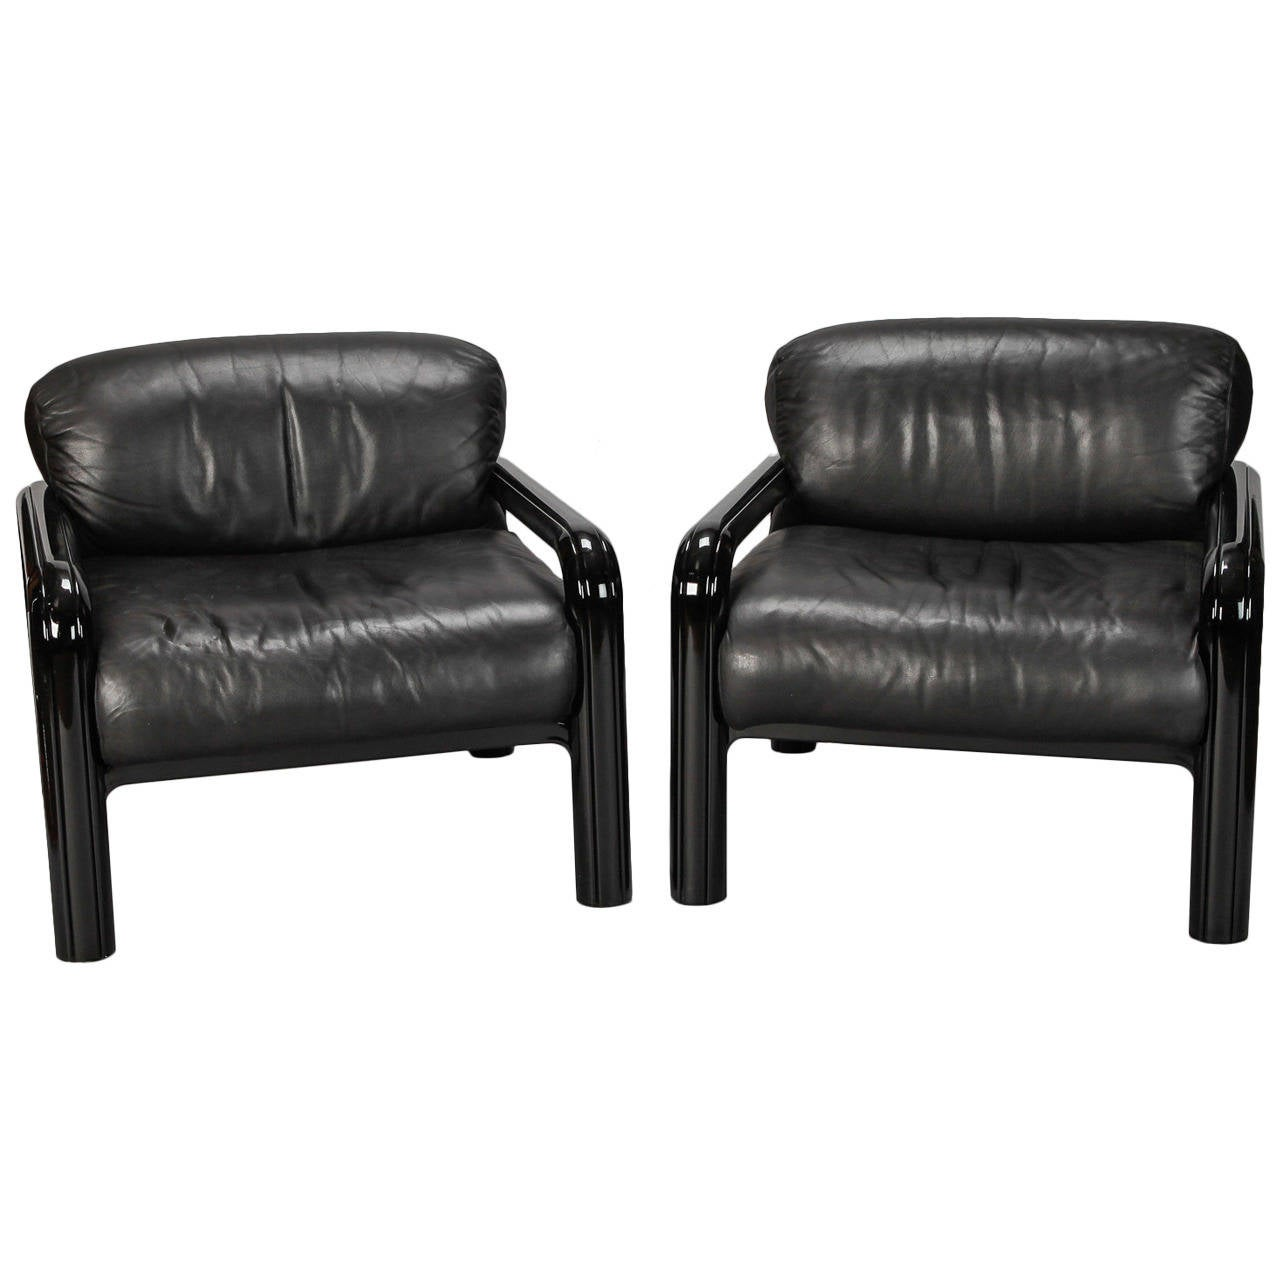 Very comfortable pair of 1950s french reclining leather armchairs - Pair Gae Aulenti For Knoll International Black Leather Arm Chairs 1